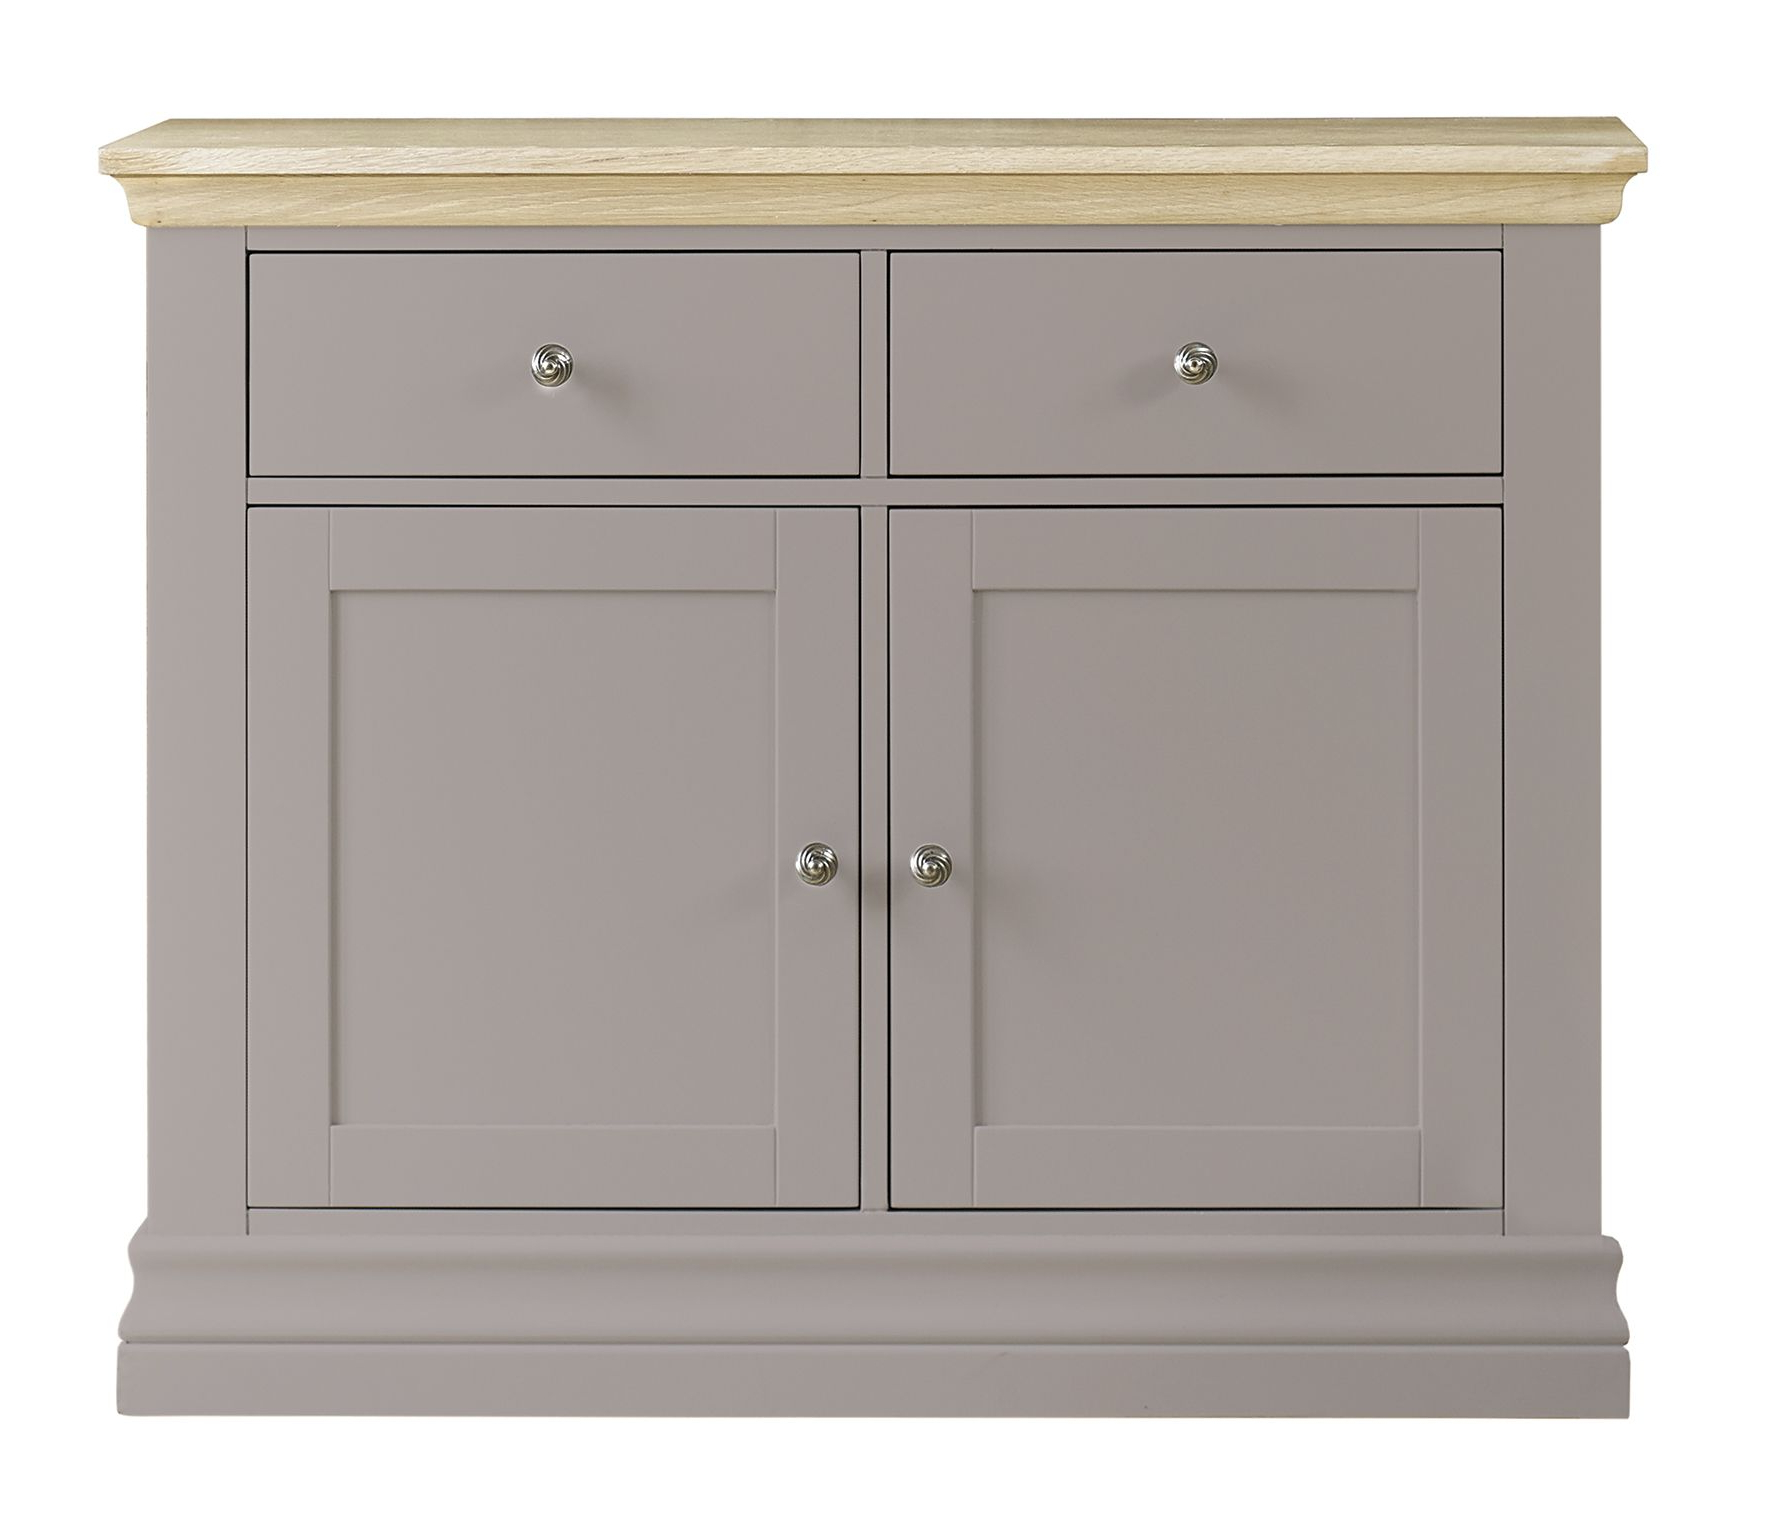 Corndell Annecy Small Sideboard Hand Painted In Fawn A Rich In Annecy Sideboards (View 7 of 20)